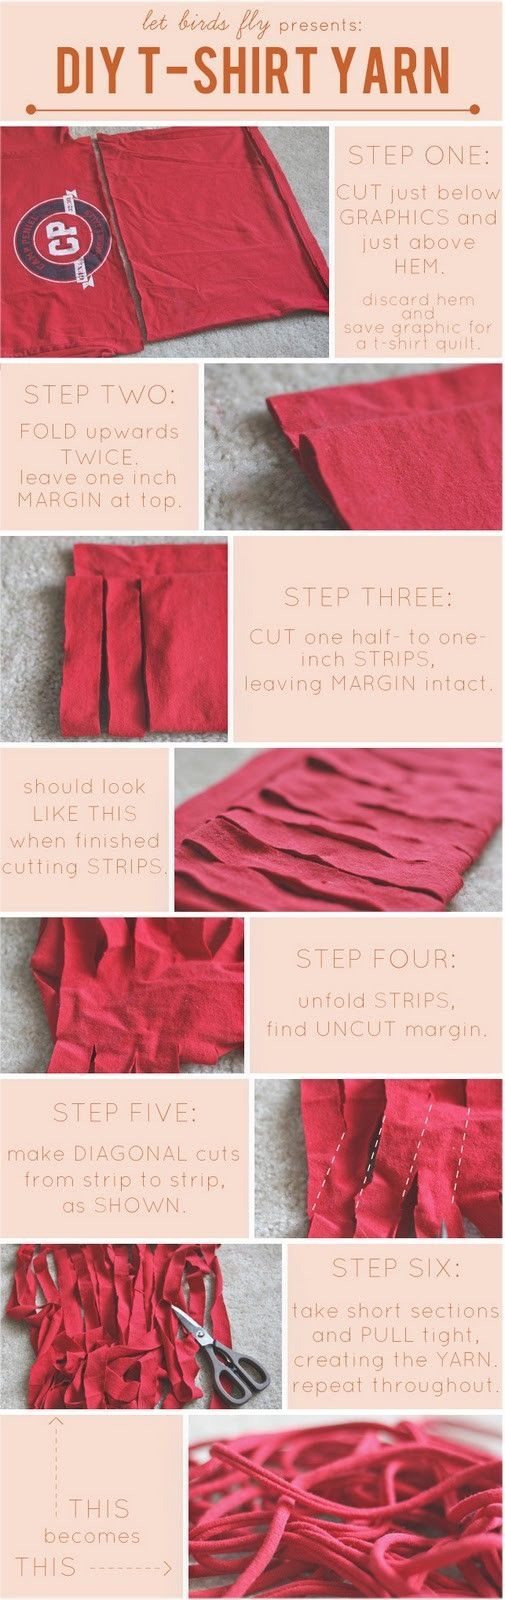 how to cut Tshirt yarn - I know I would just mess this up